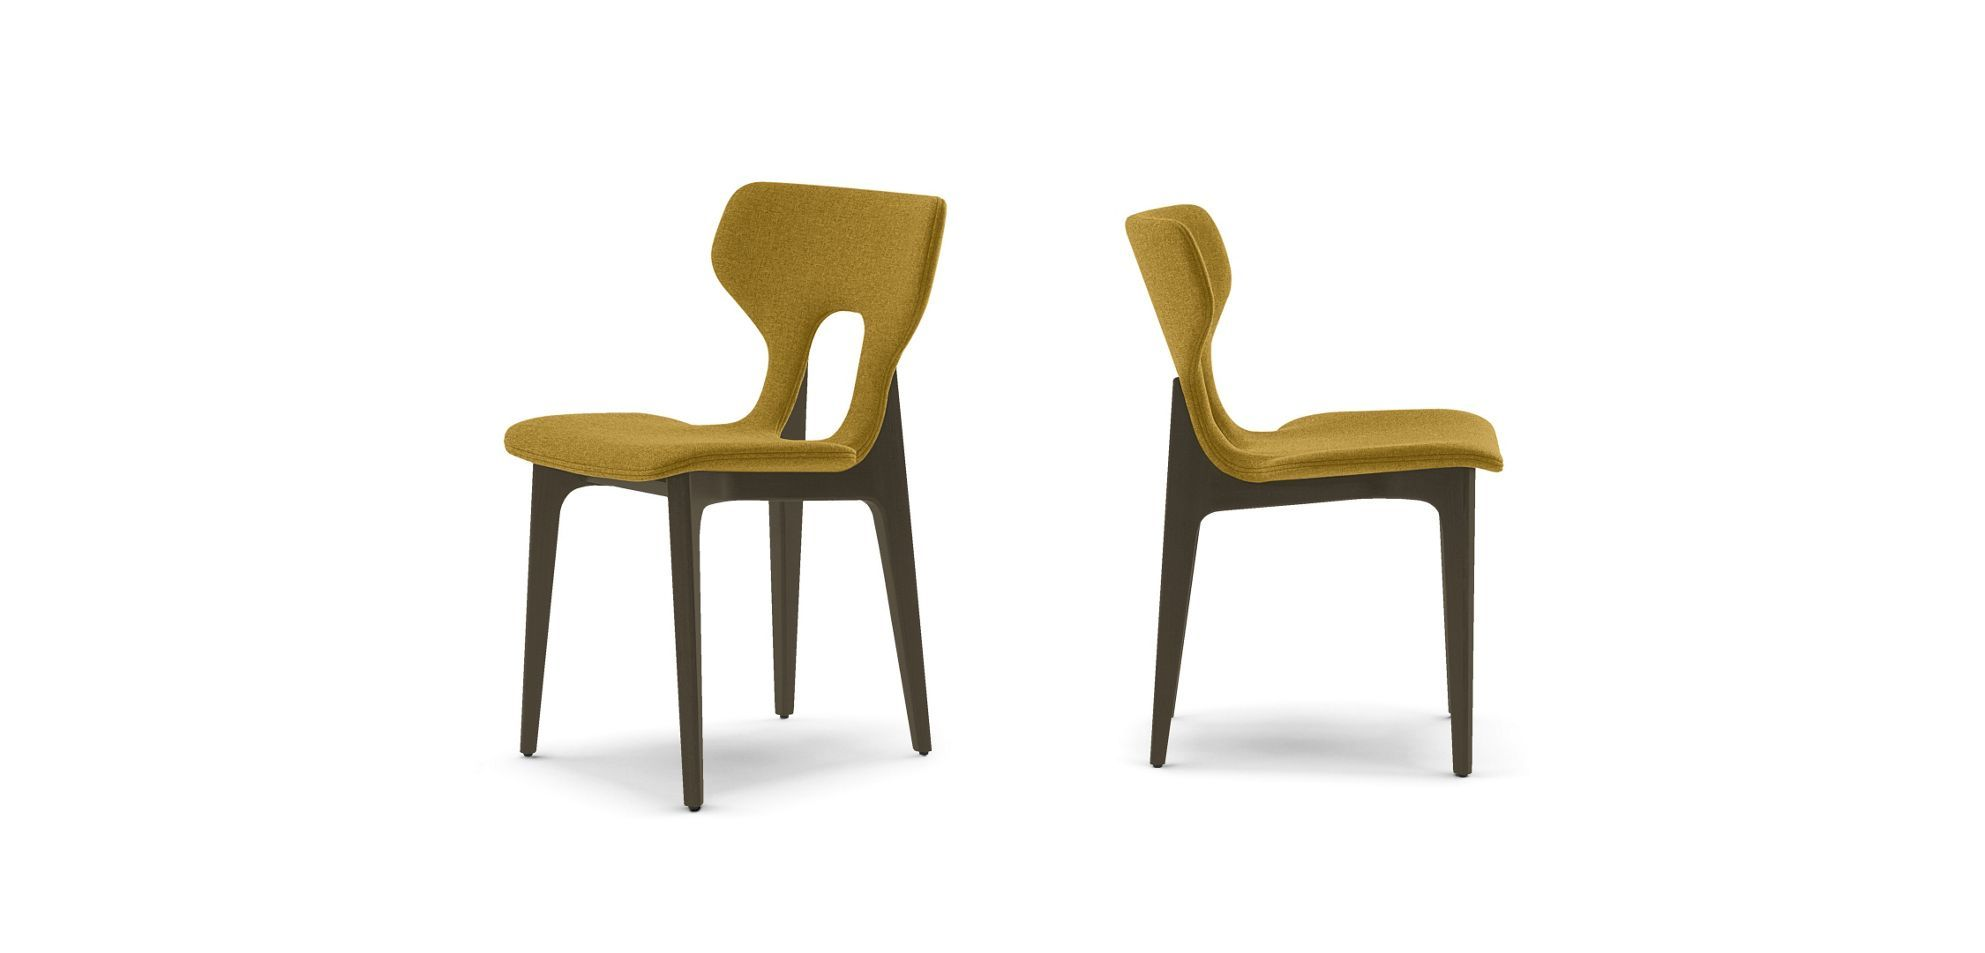 CIRCA CHAIR (CHAIRS, STOOLS, BENCHES) - Roche Bobois | Chairs ...